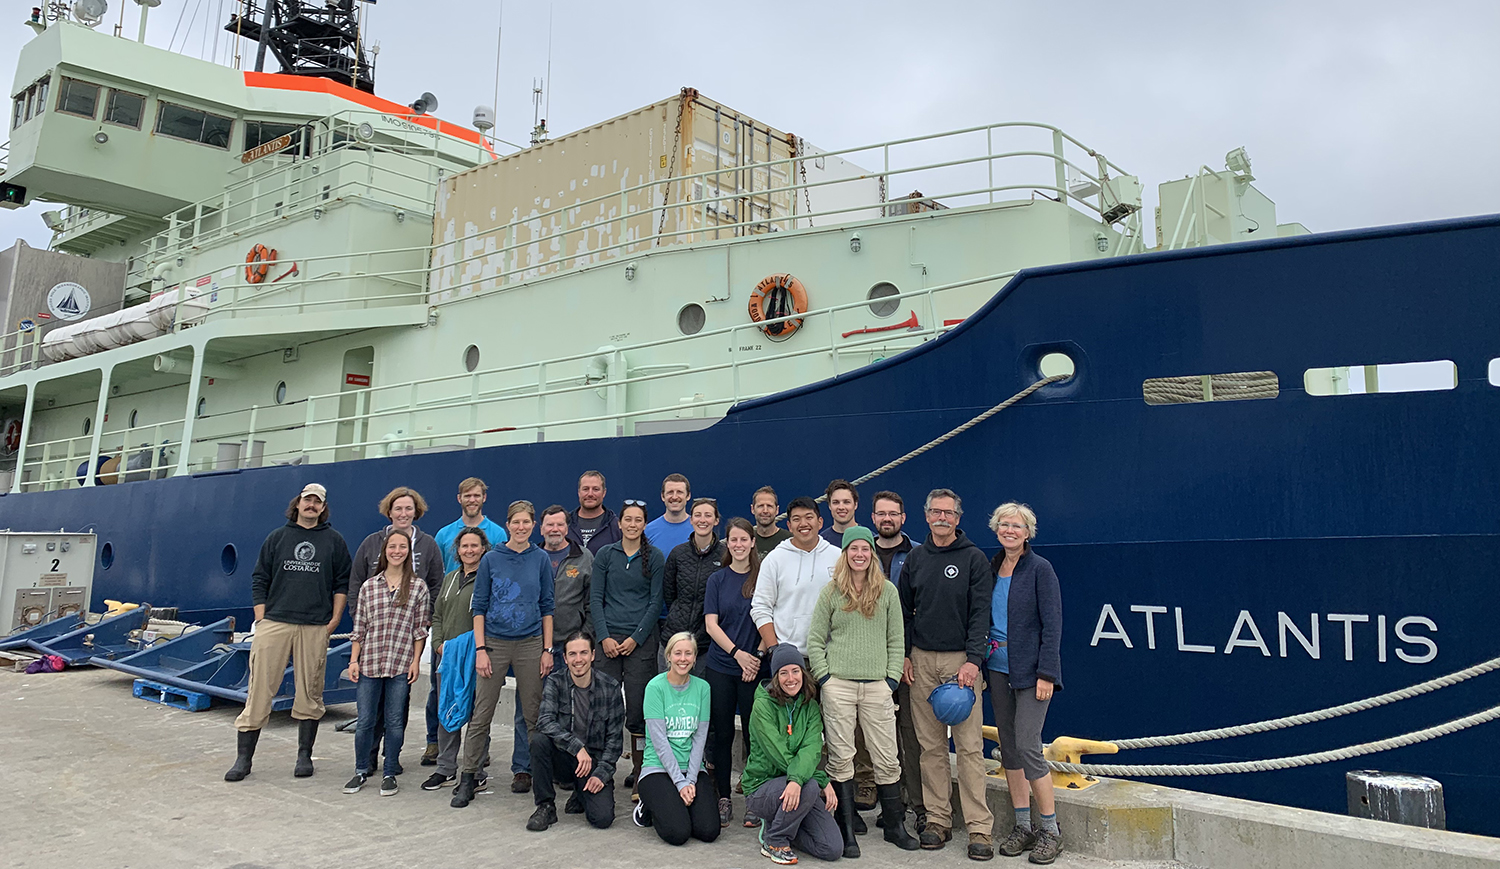 Research crew stands on dock with a large research vessel called the Atlantis behind them.